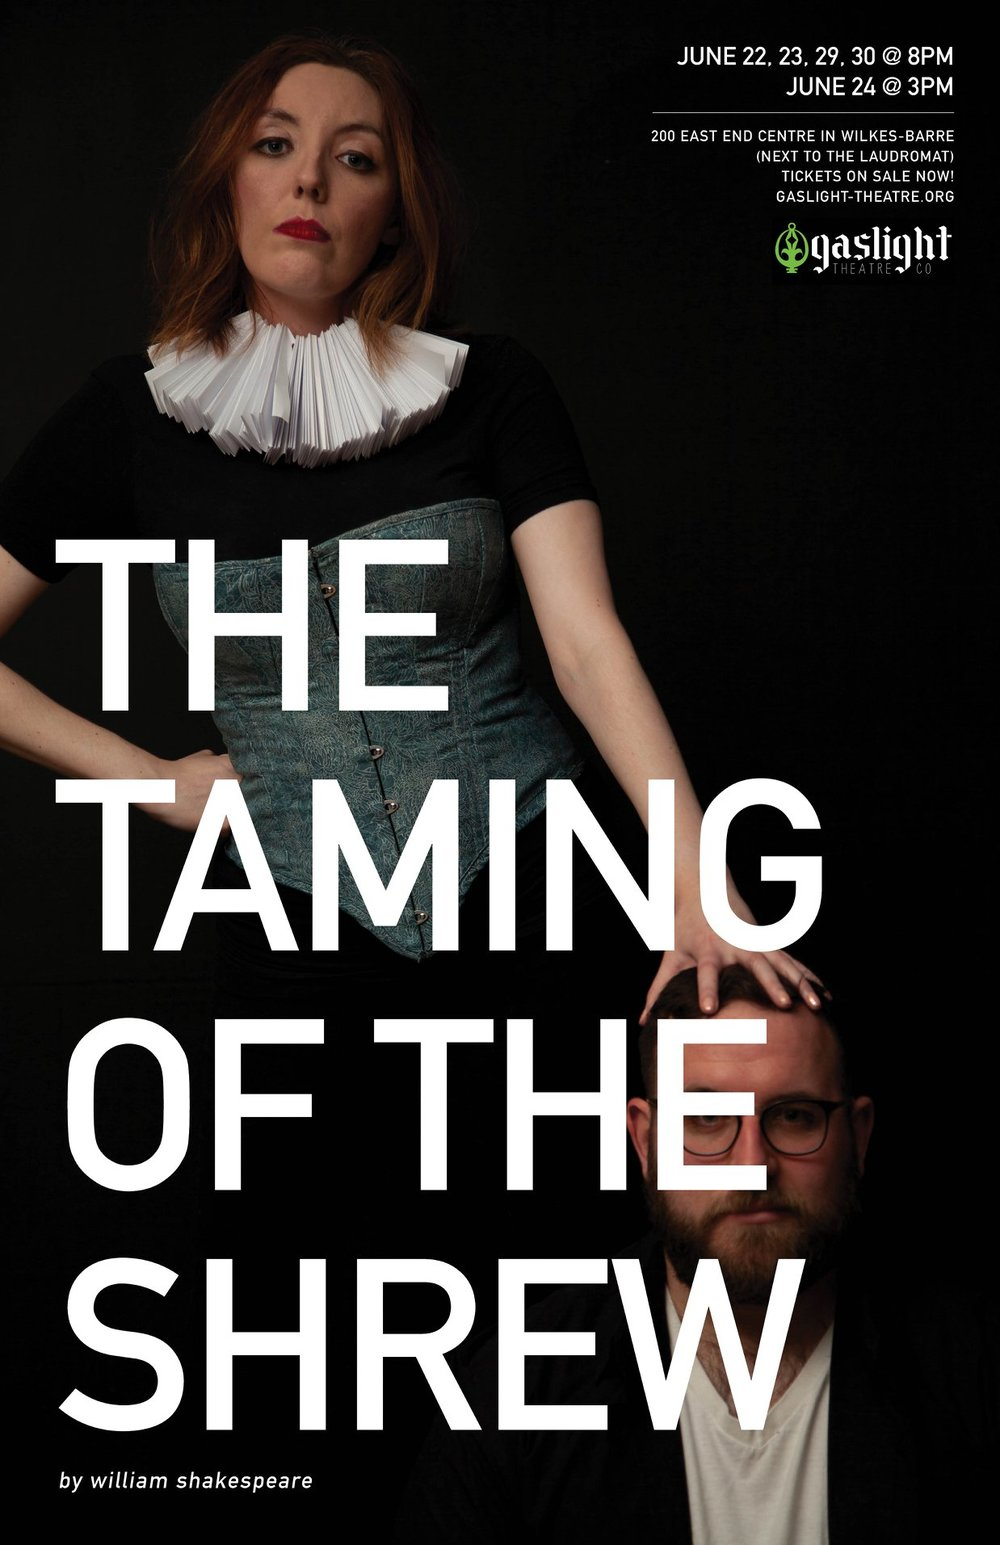 Taming of the Shrew - Gaslight Theatre Company , WILKES-BARRE, PAPLAYWRIGHT: William ShakespeareDIRECTORS: DAVE REYNOLDS & Brandi GeorgeScenic & LIGHTING DESIGNER: Dave ReynoldsCOSTUME DESIGNER:AUTUMN J. GALKA PHOTOGRAPHY: